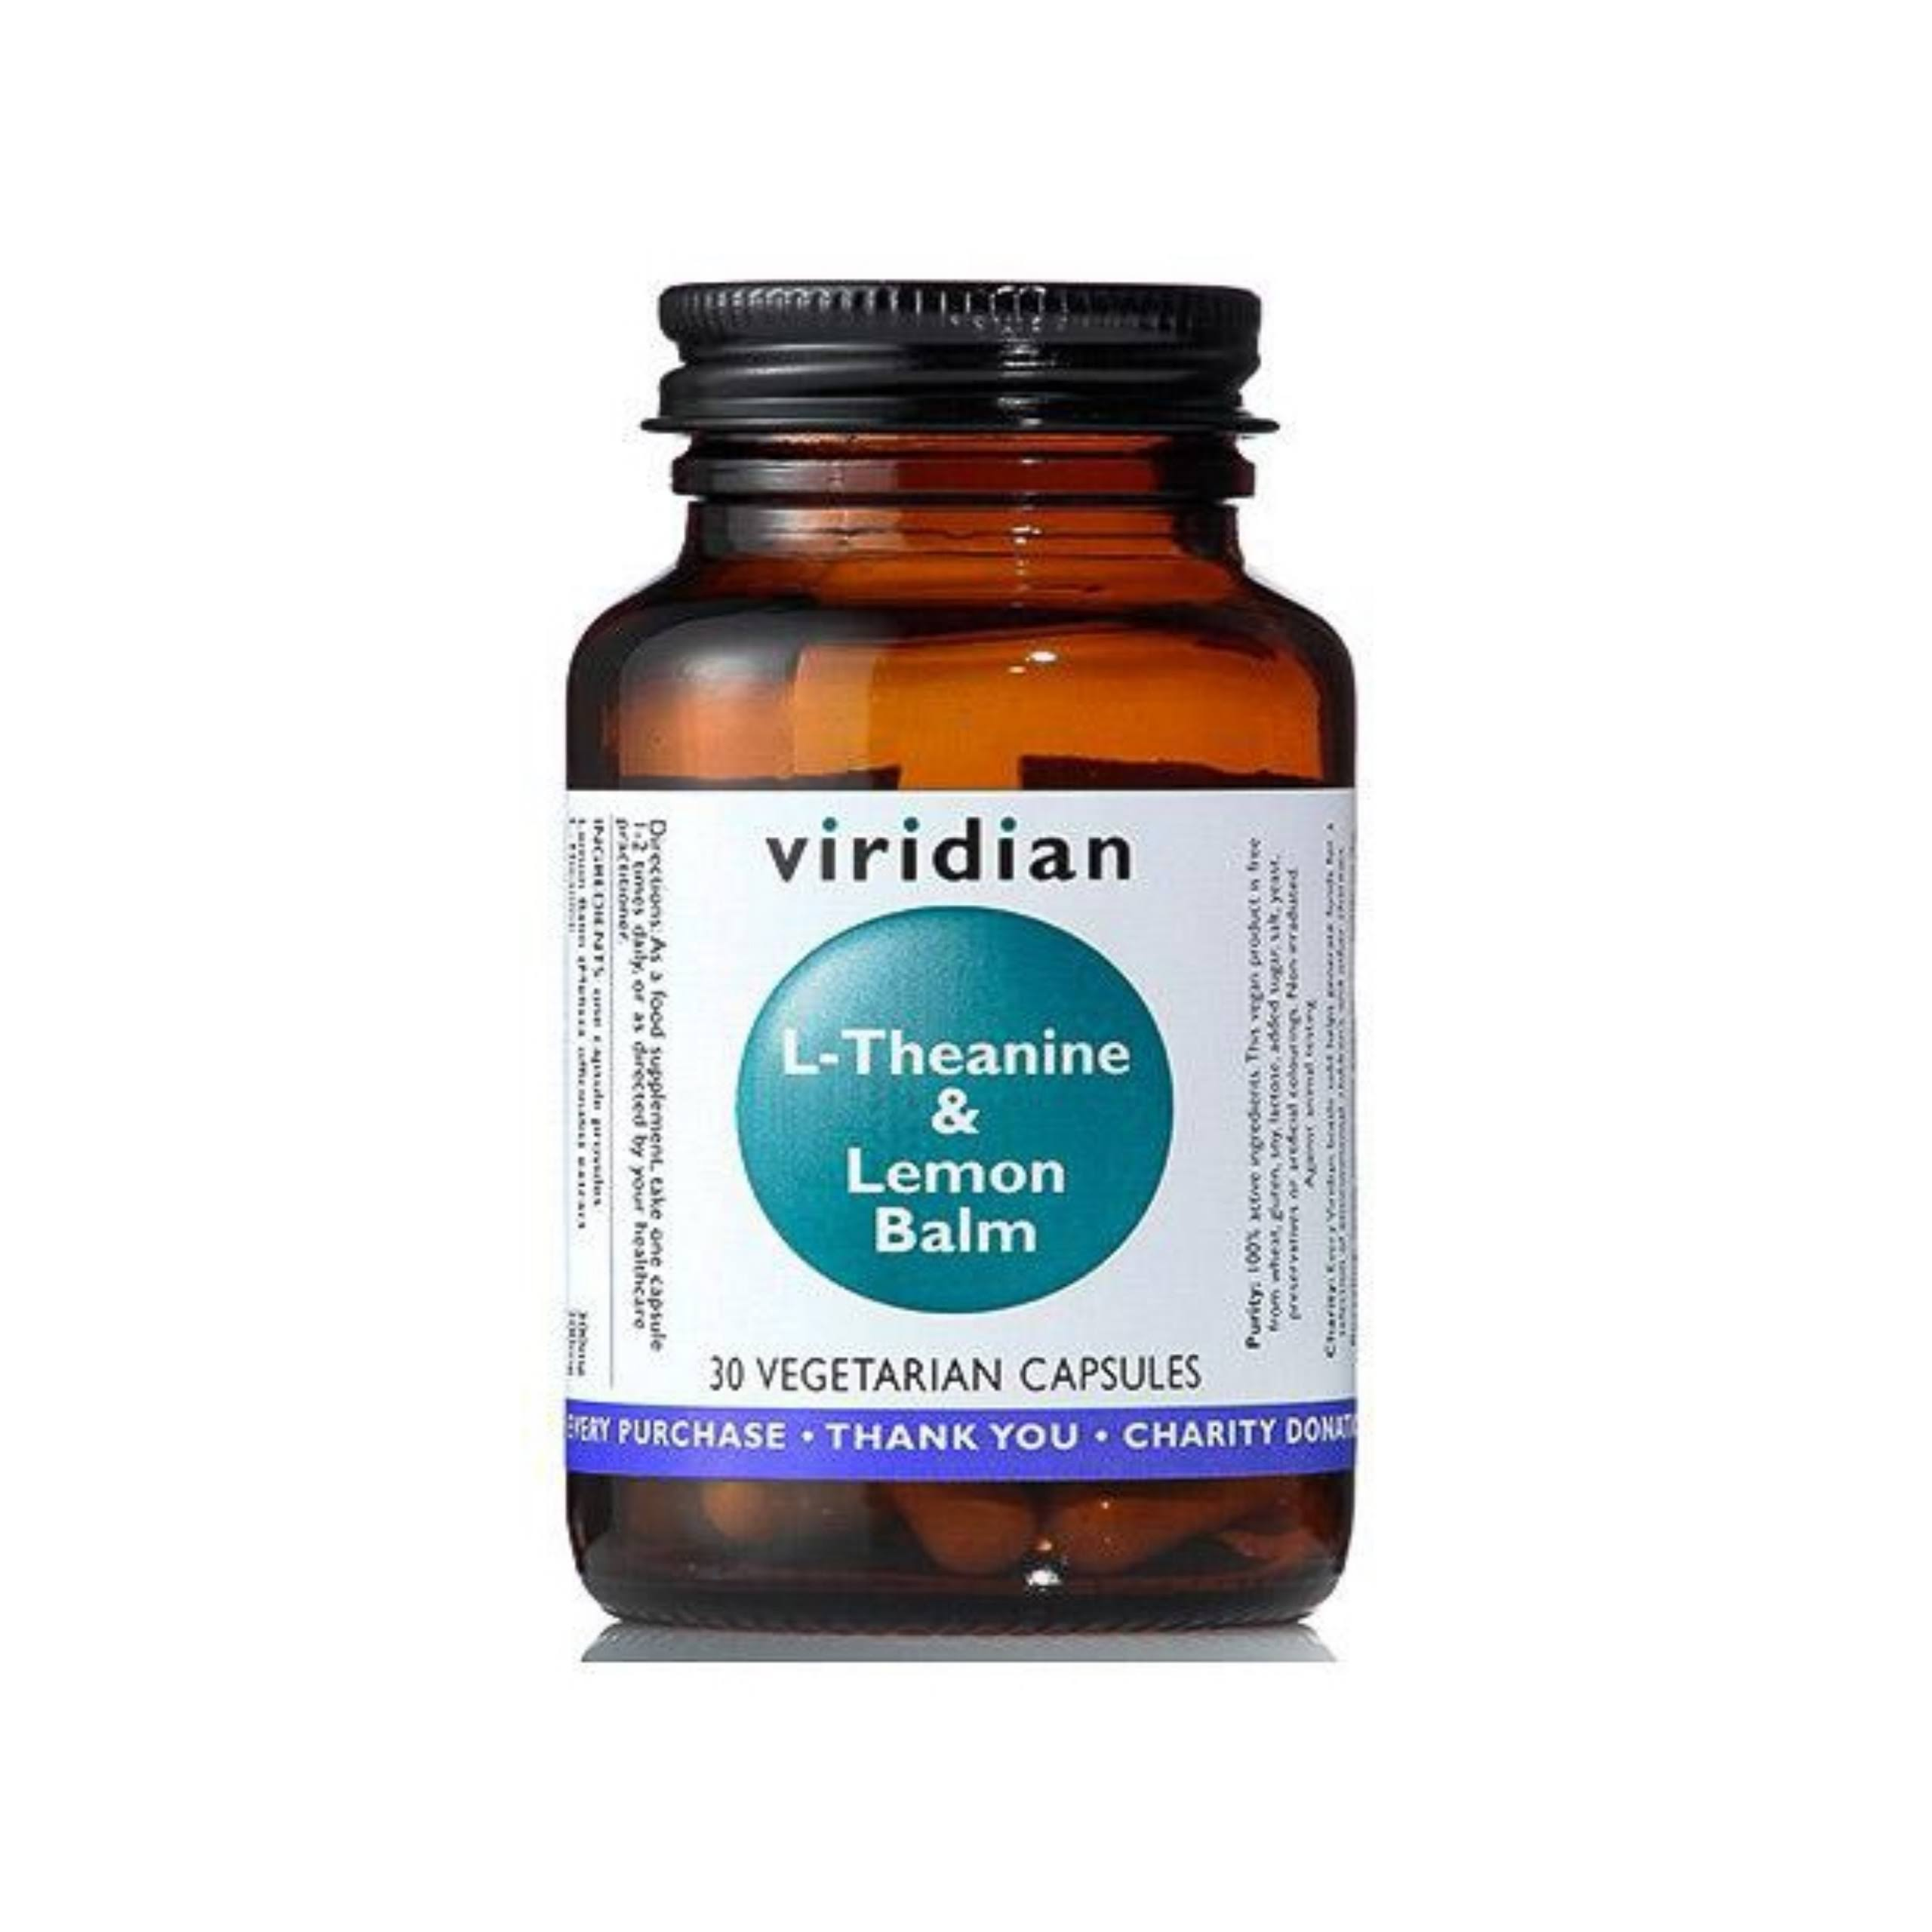 Viridian L-Theanine & Lemon Balm